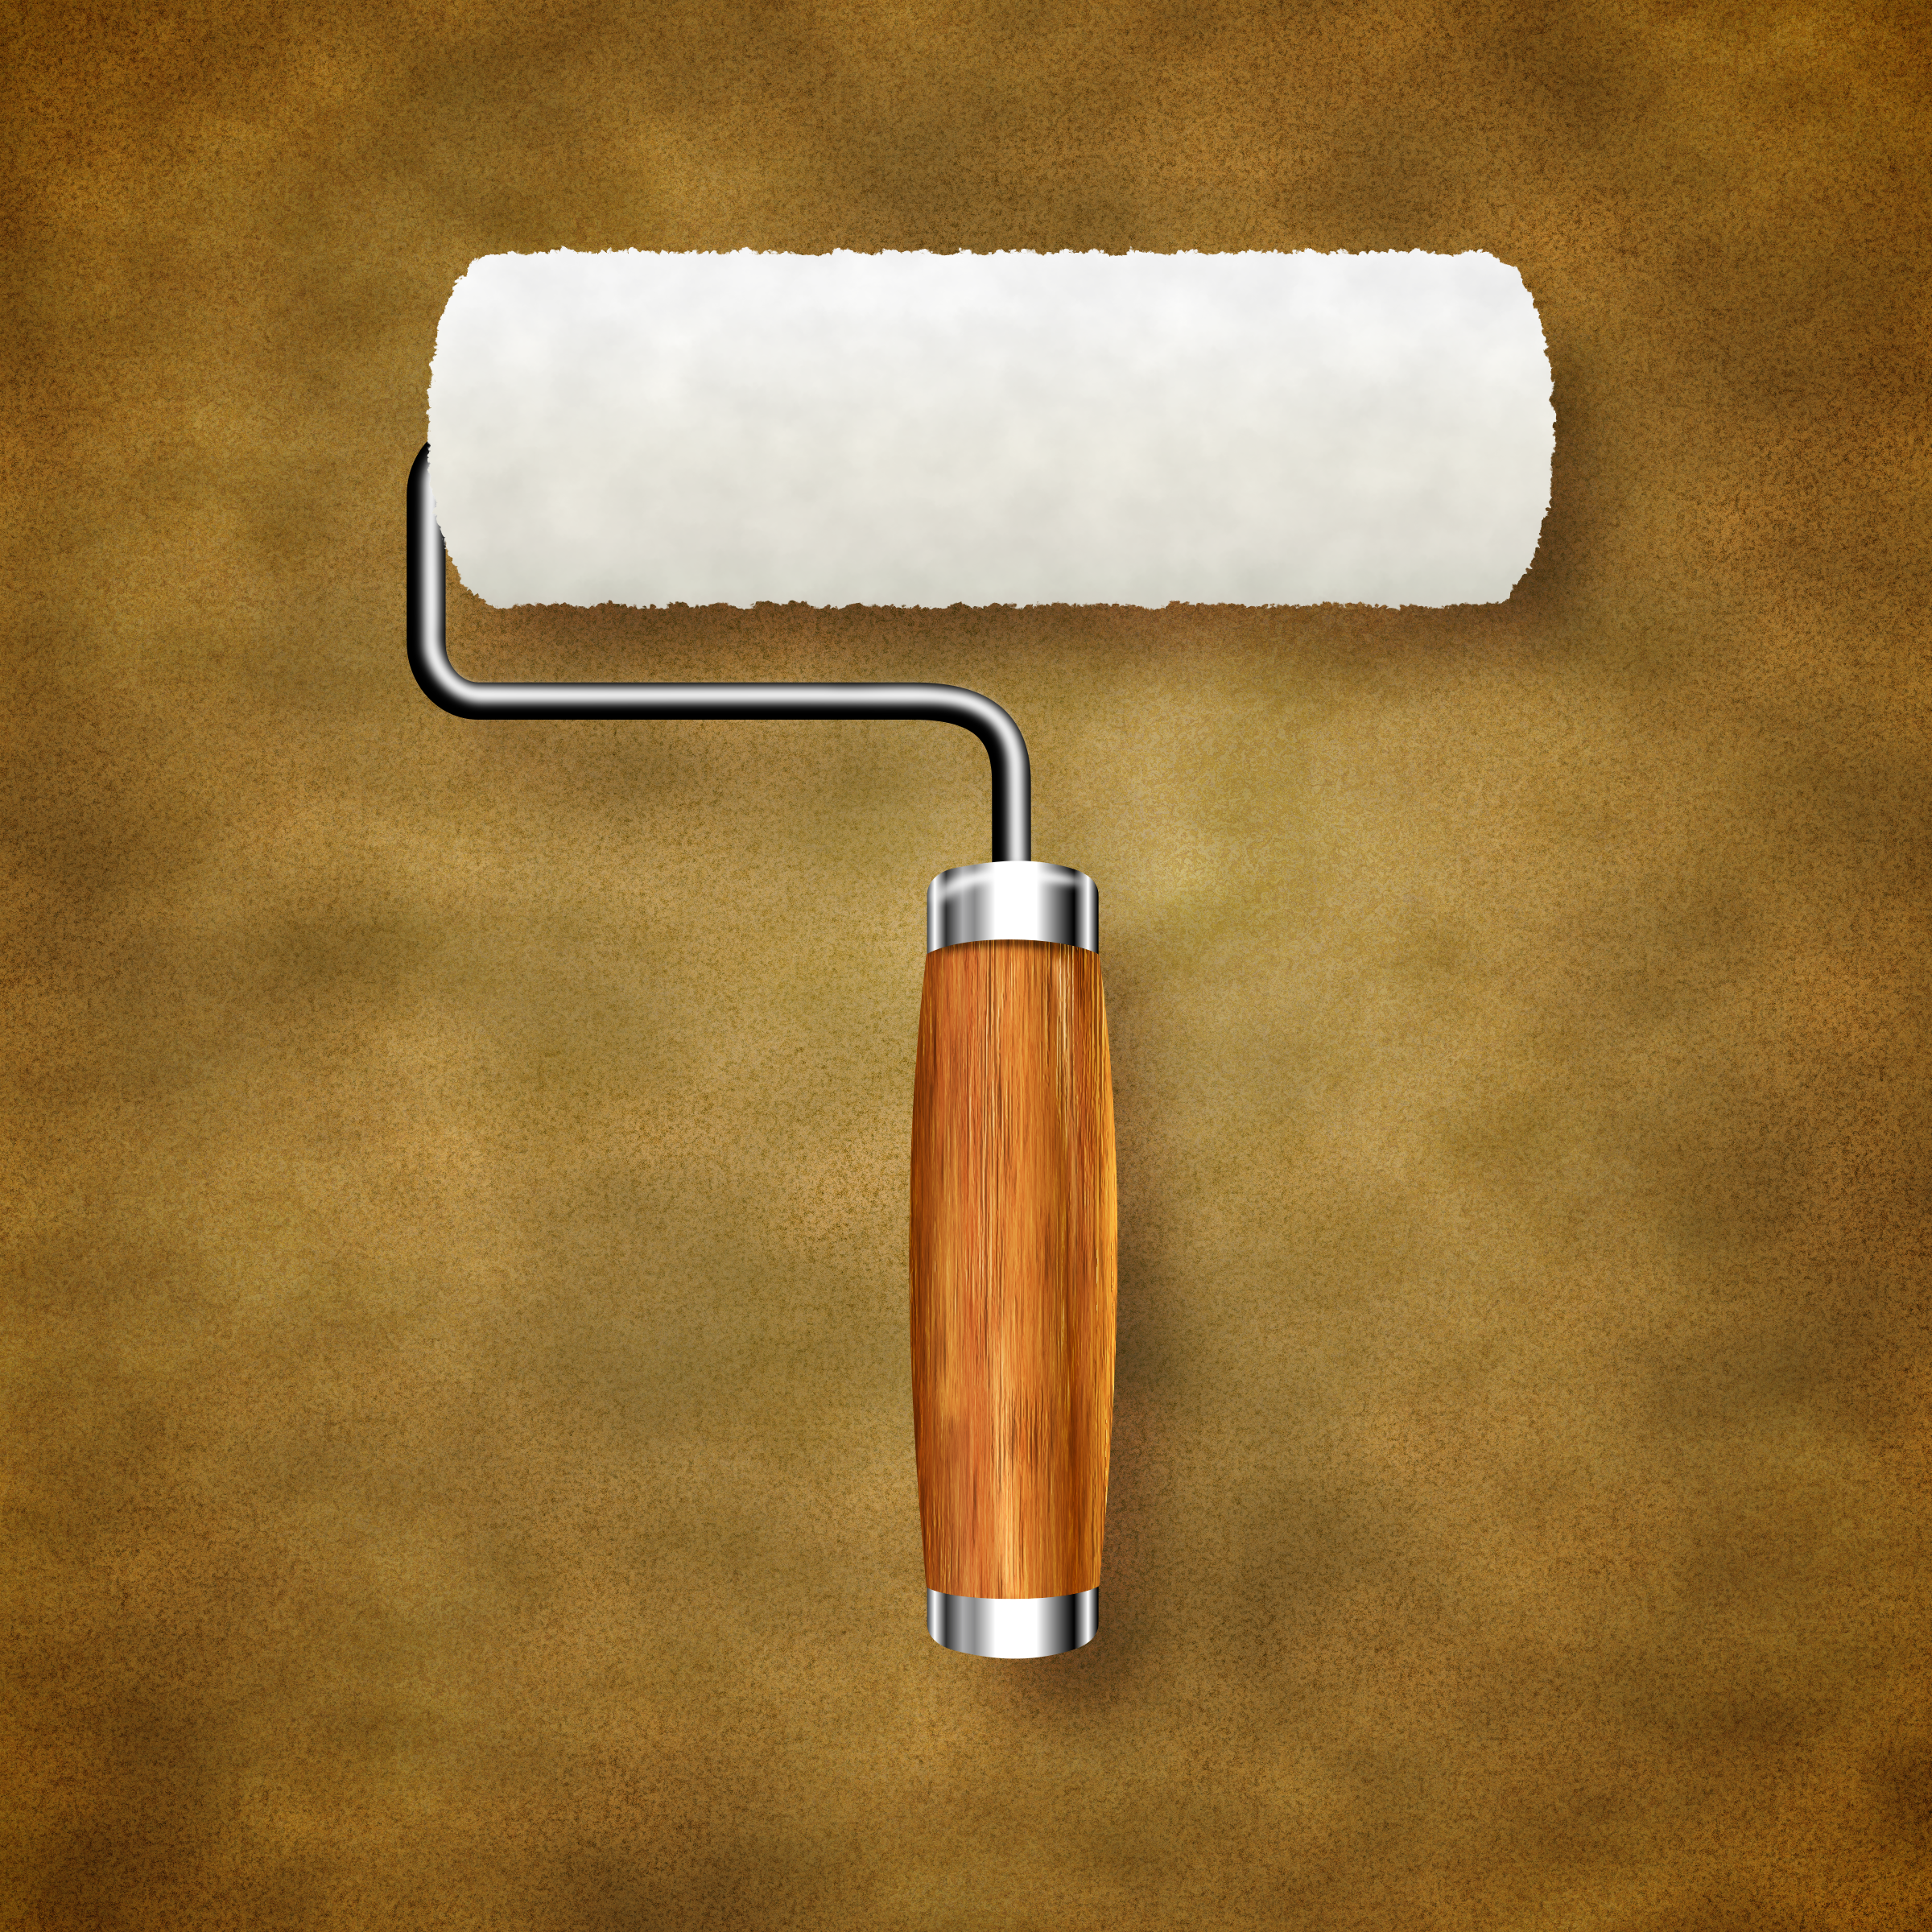 paint roller by Lazur URH